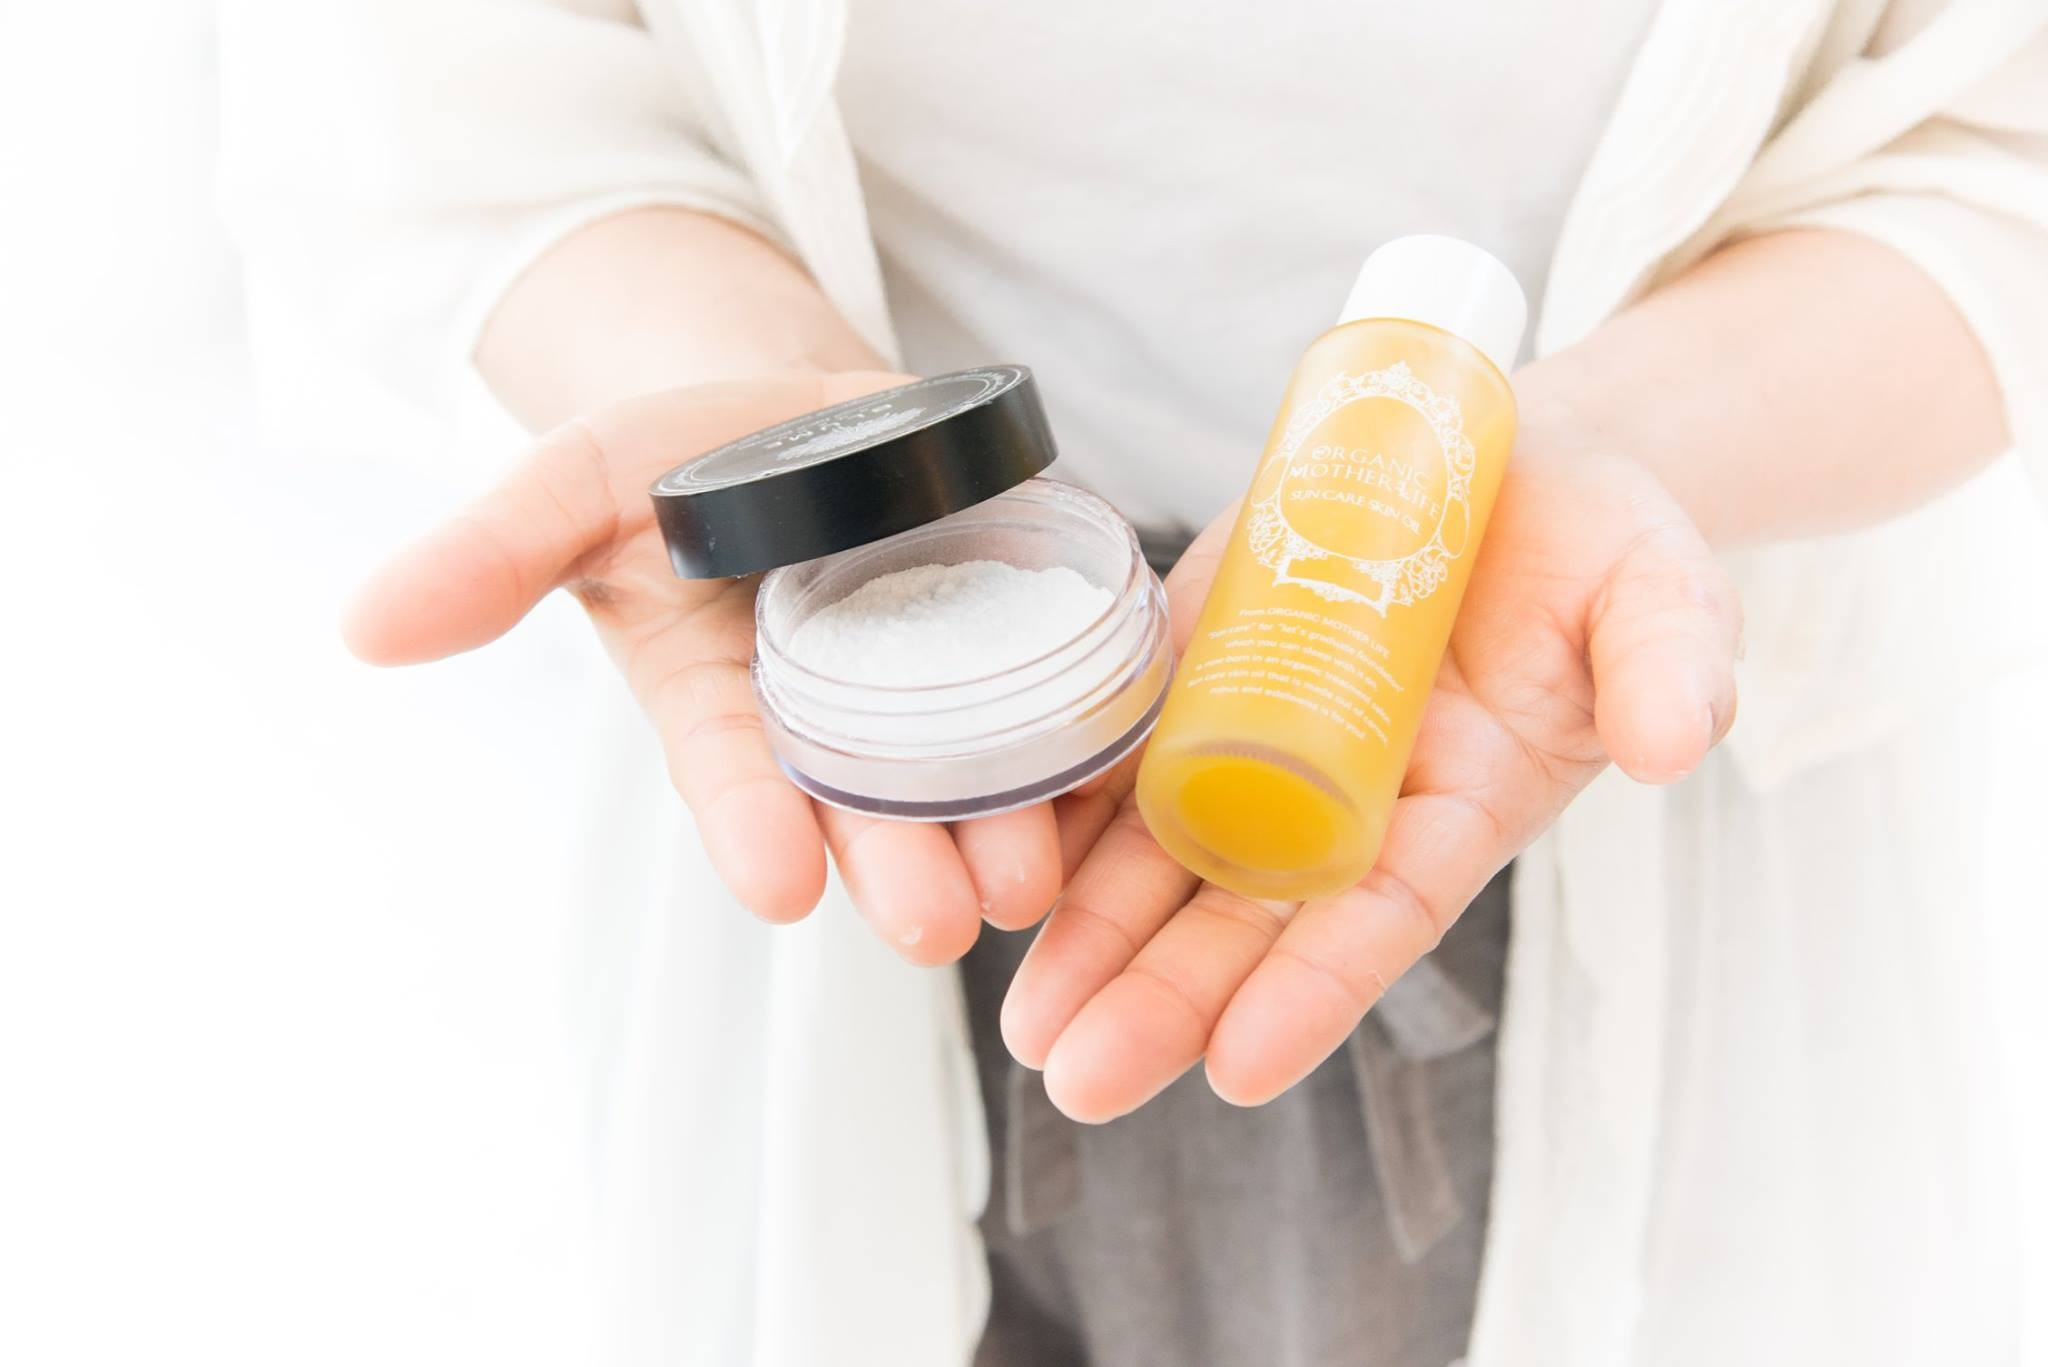 Introducing organic cosme